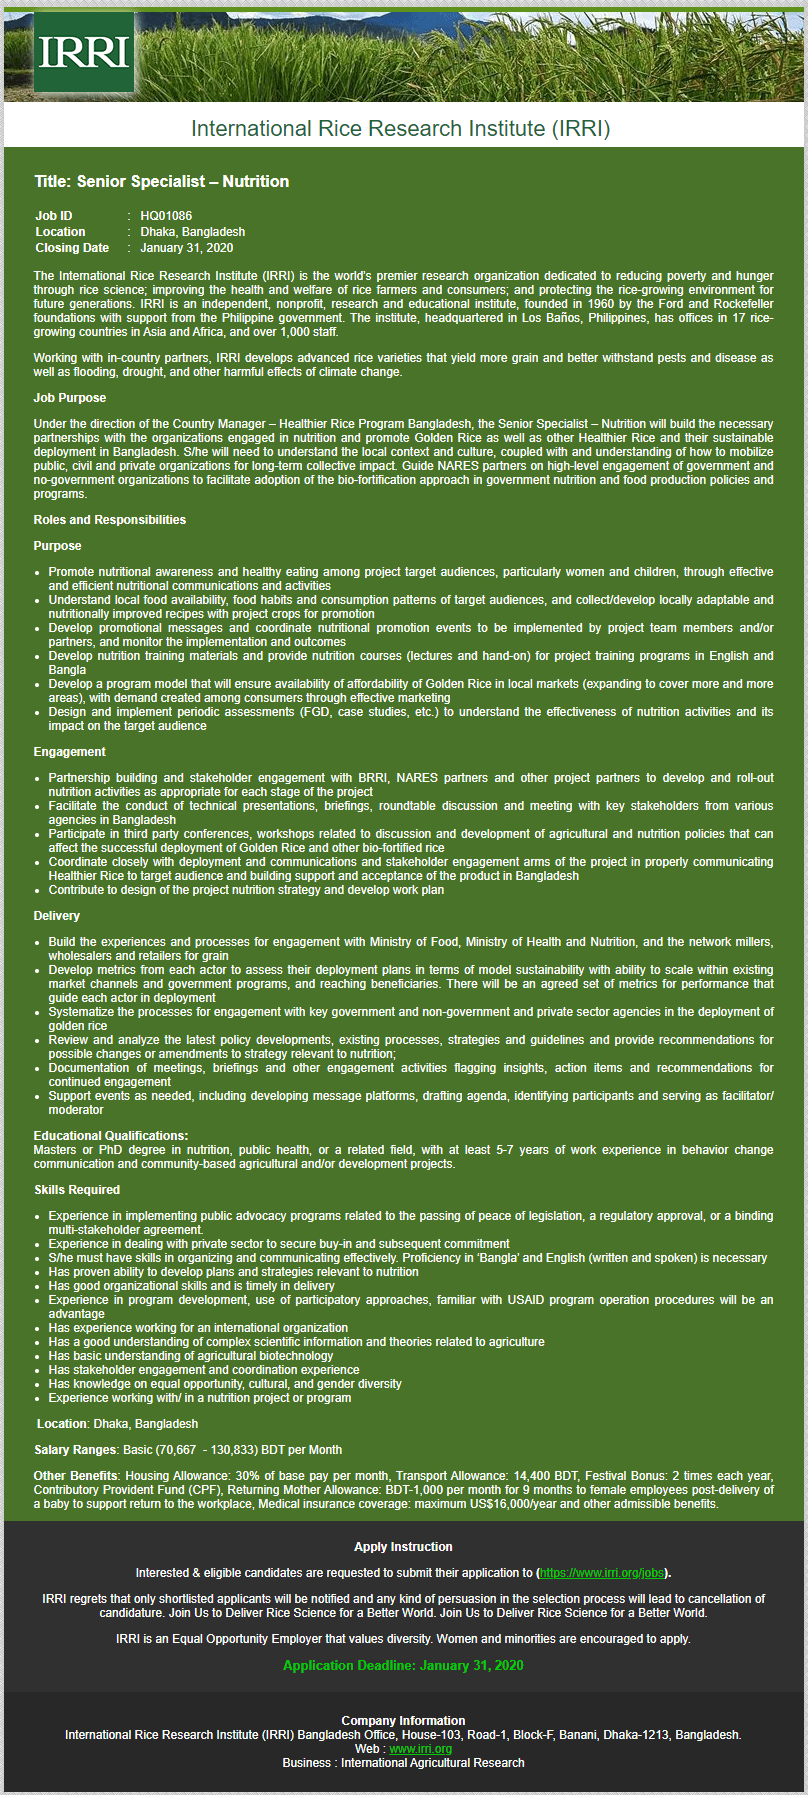 IRRI job circular in 2020